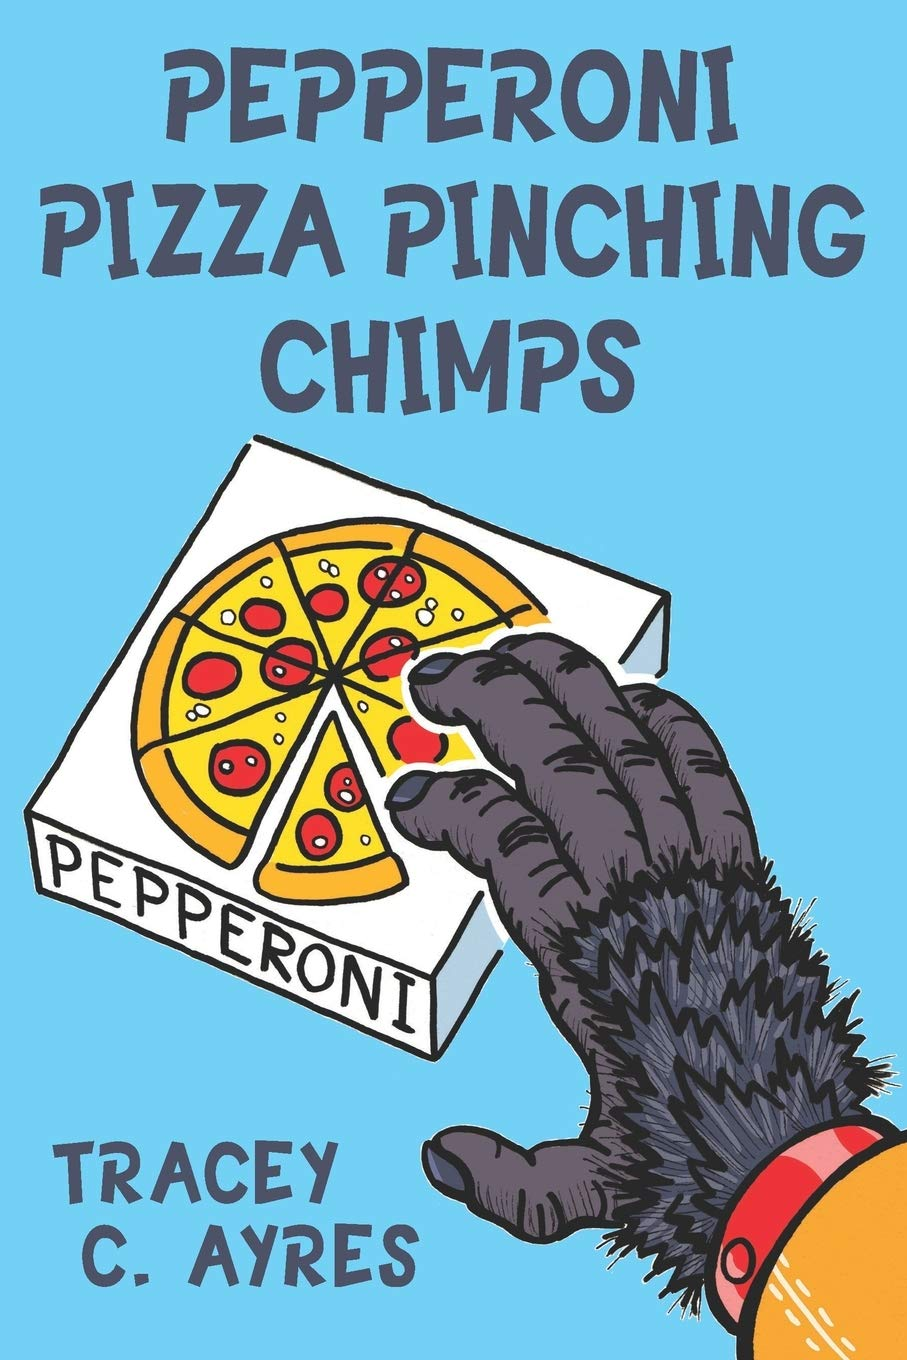 Pepperoni Pizza Pinching Chimps cover